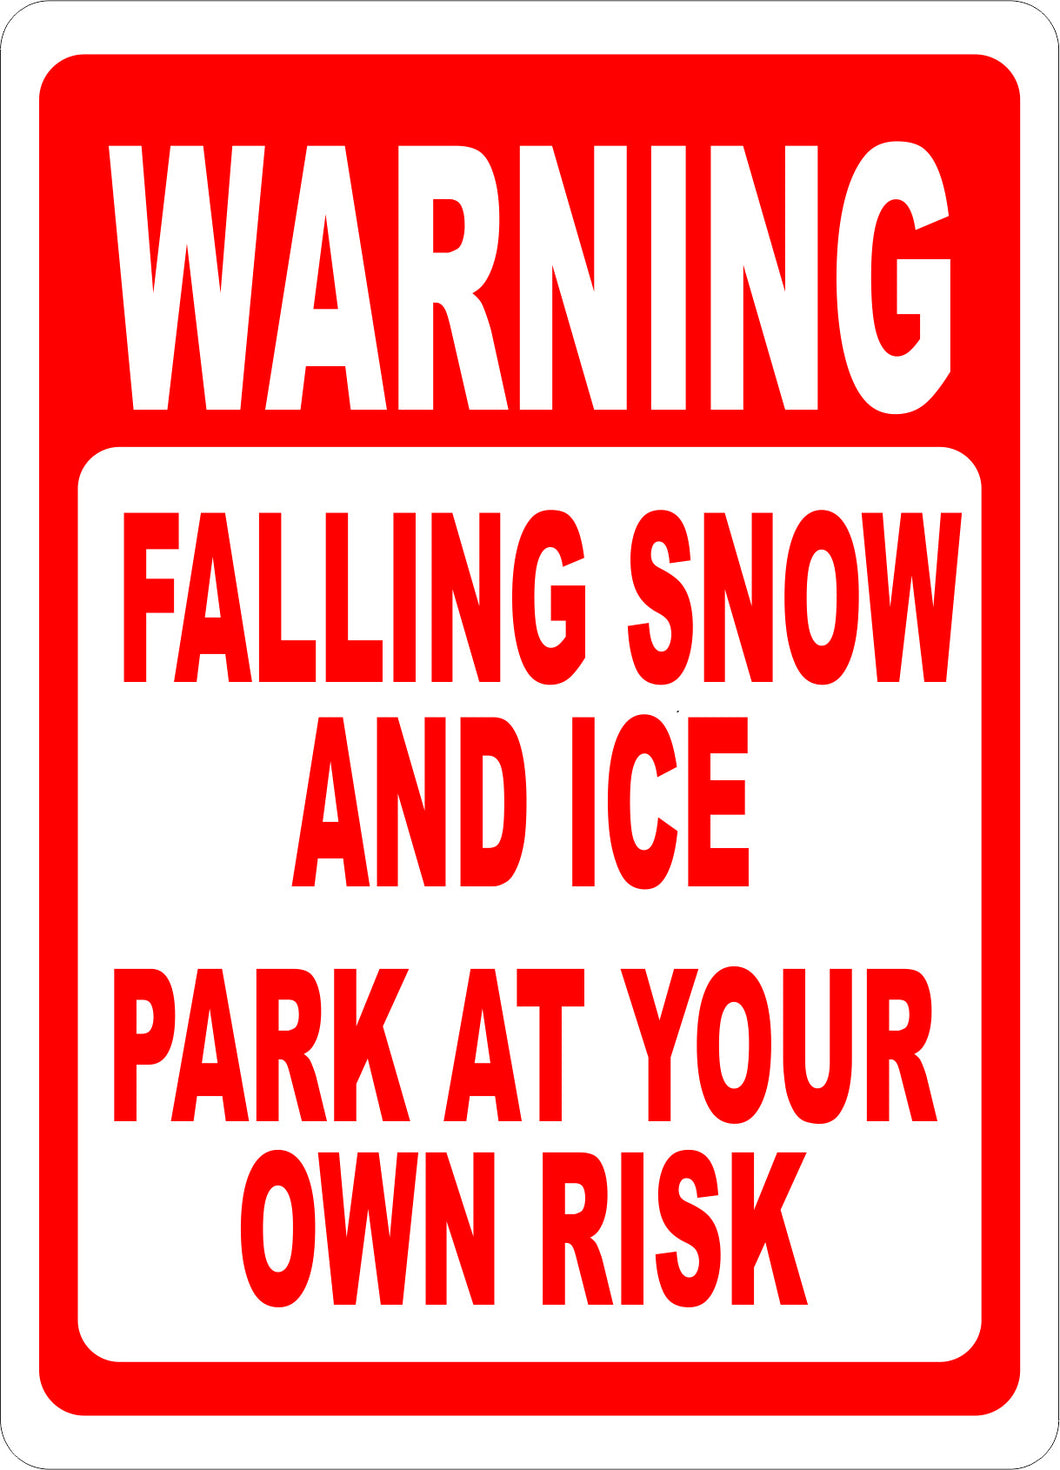 Warning Falling Ice & Snow Park at Own Risk Sign - Signs & Decals by SalaGraphics